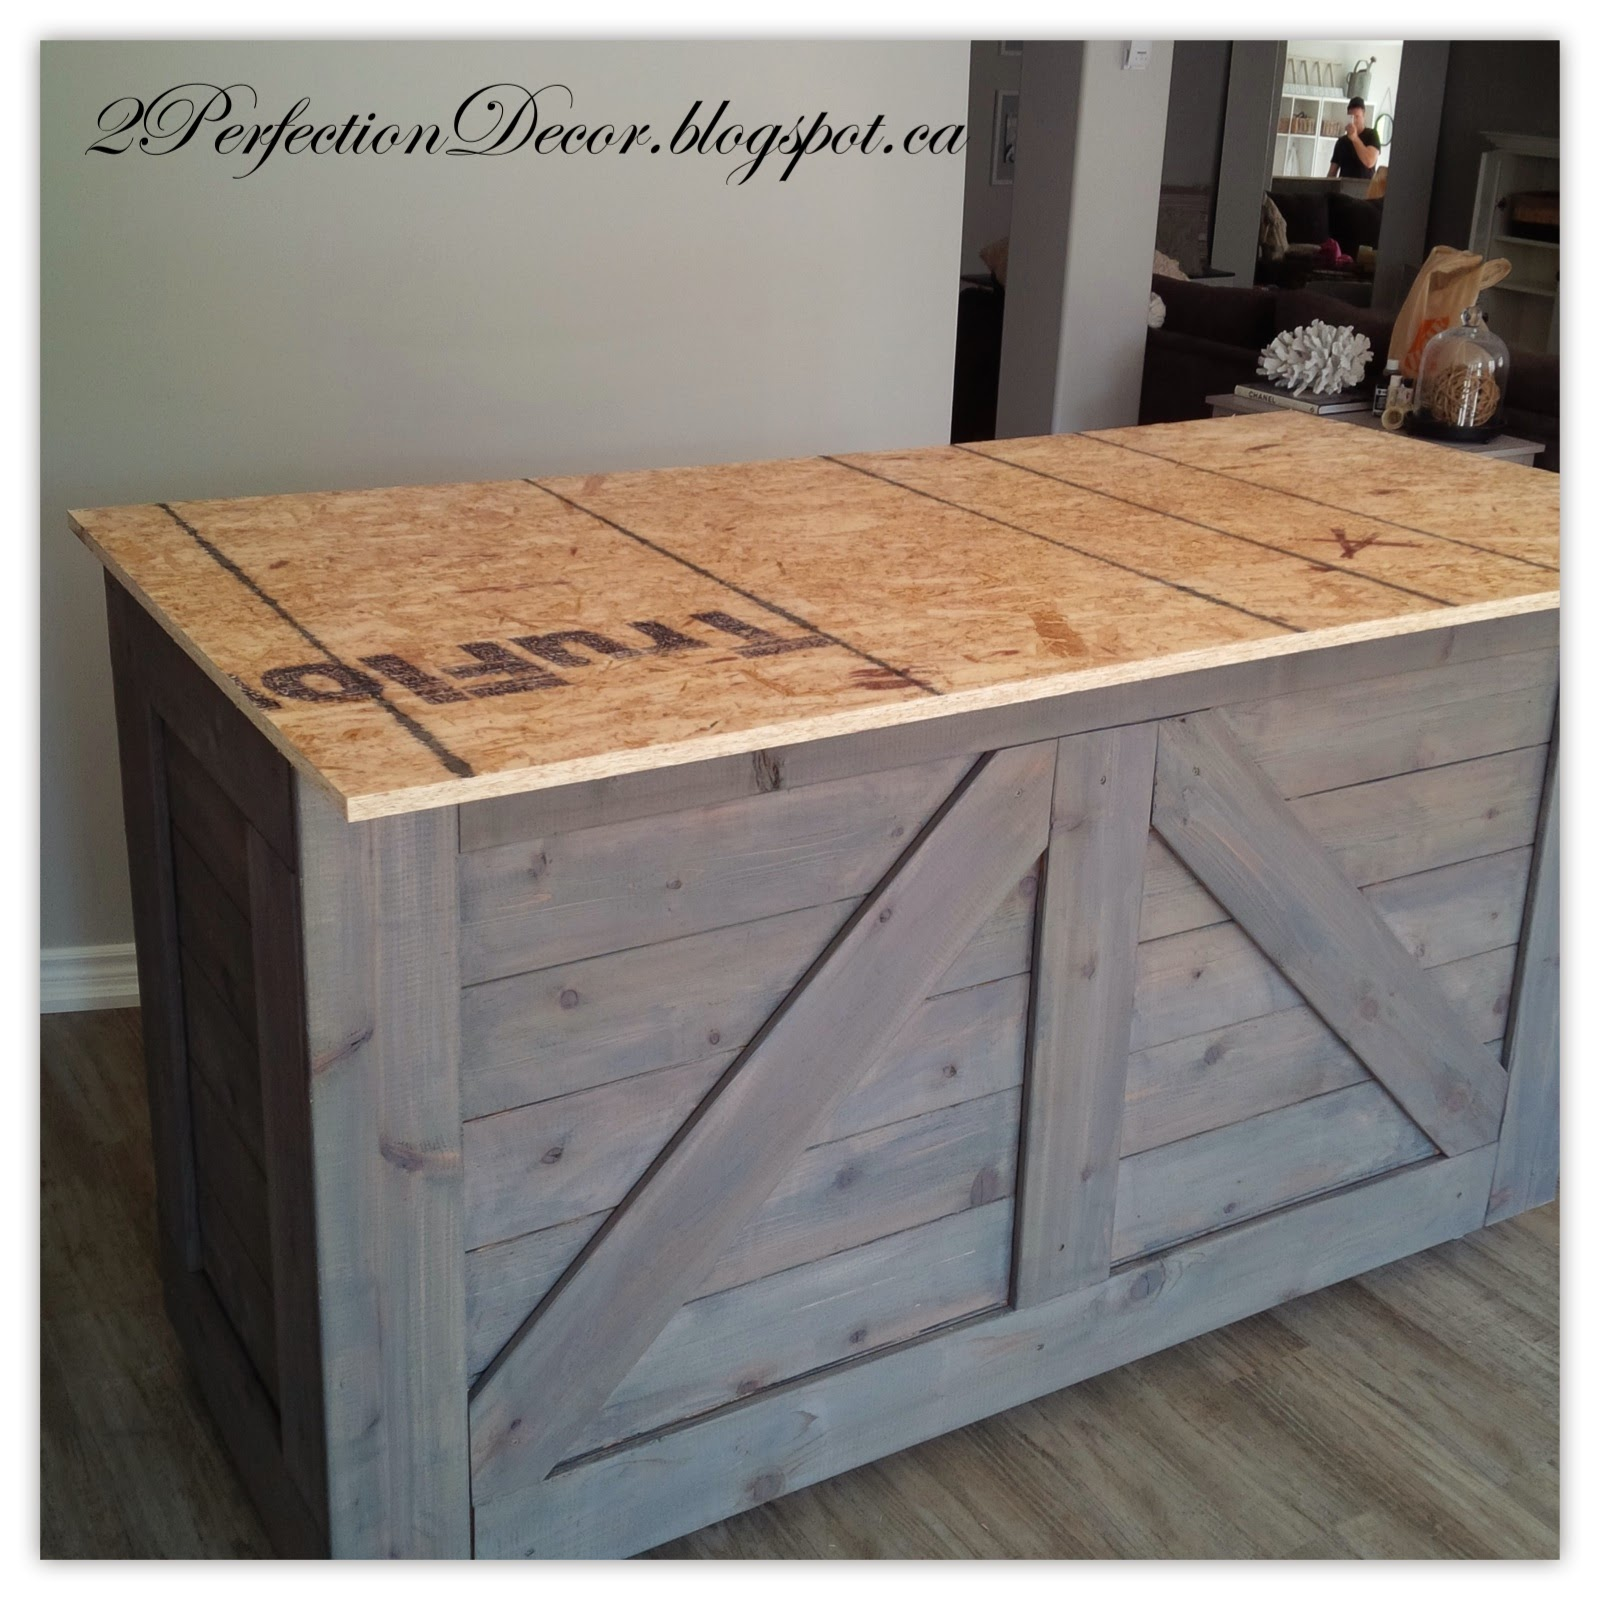 2Perfection Decor: Ikea Varde Cabinet transformed into Rustic Wood Bar